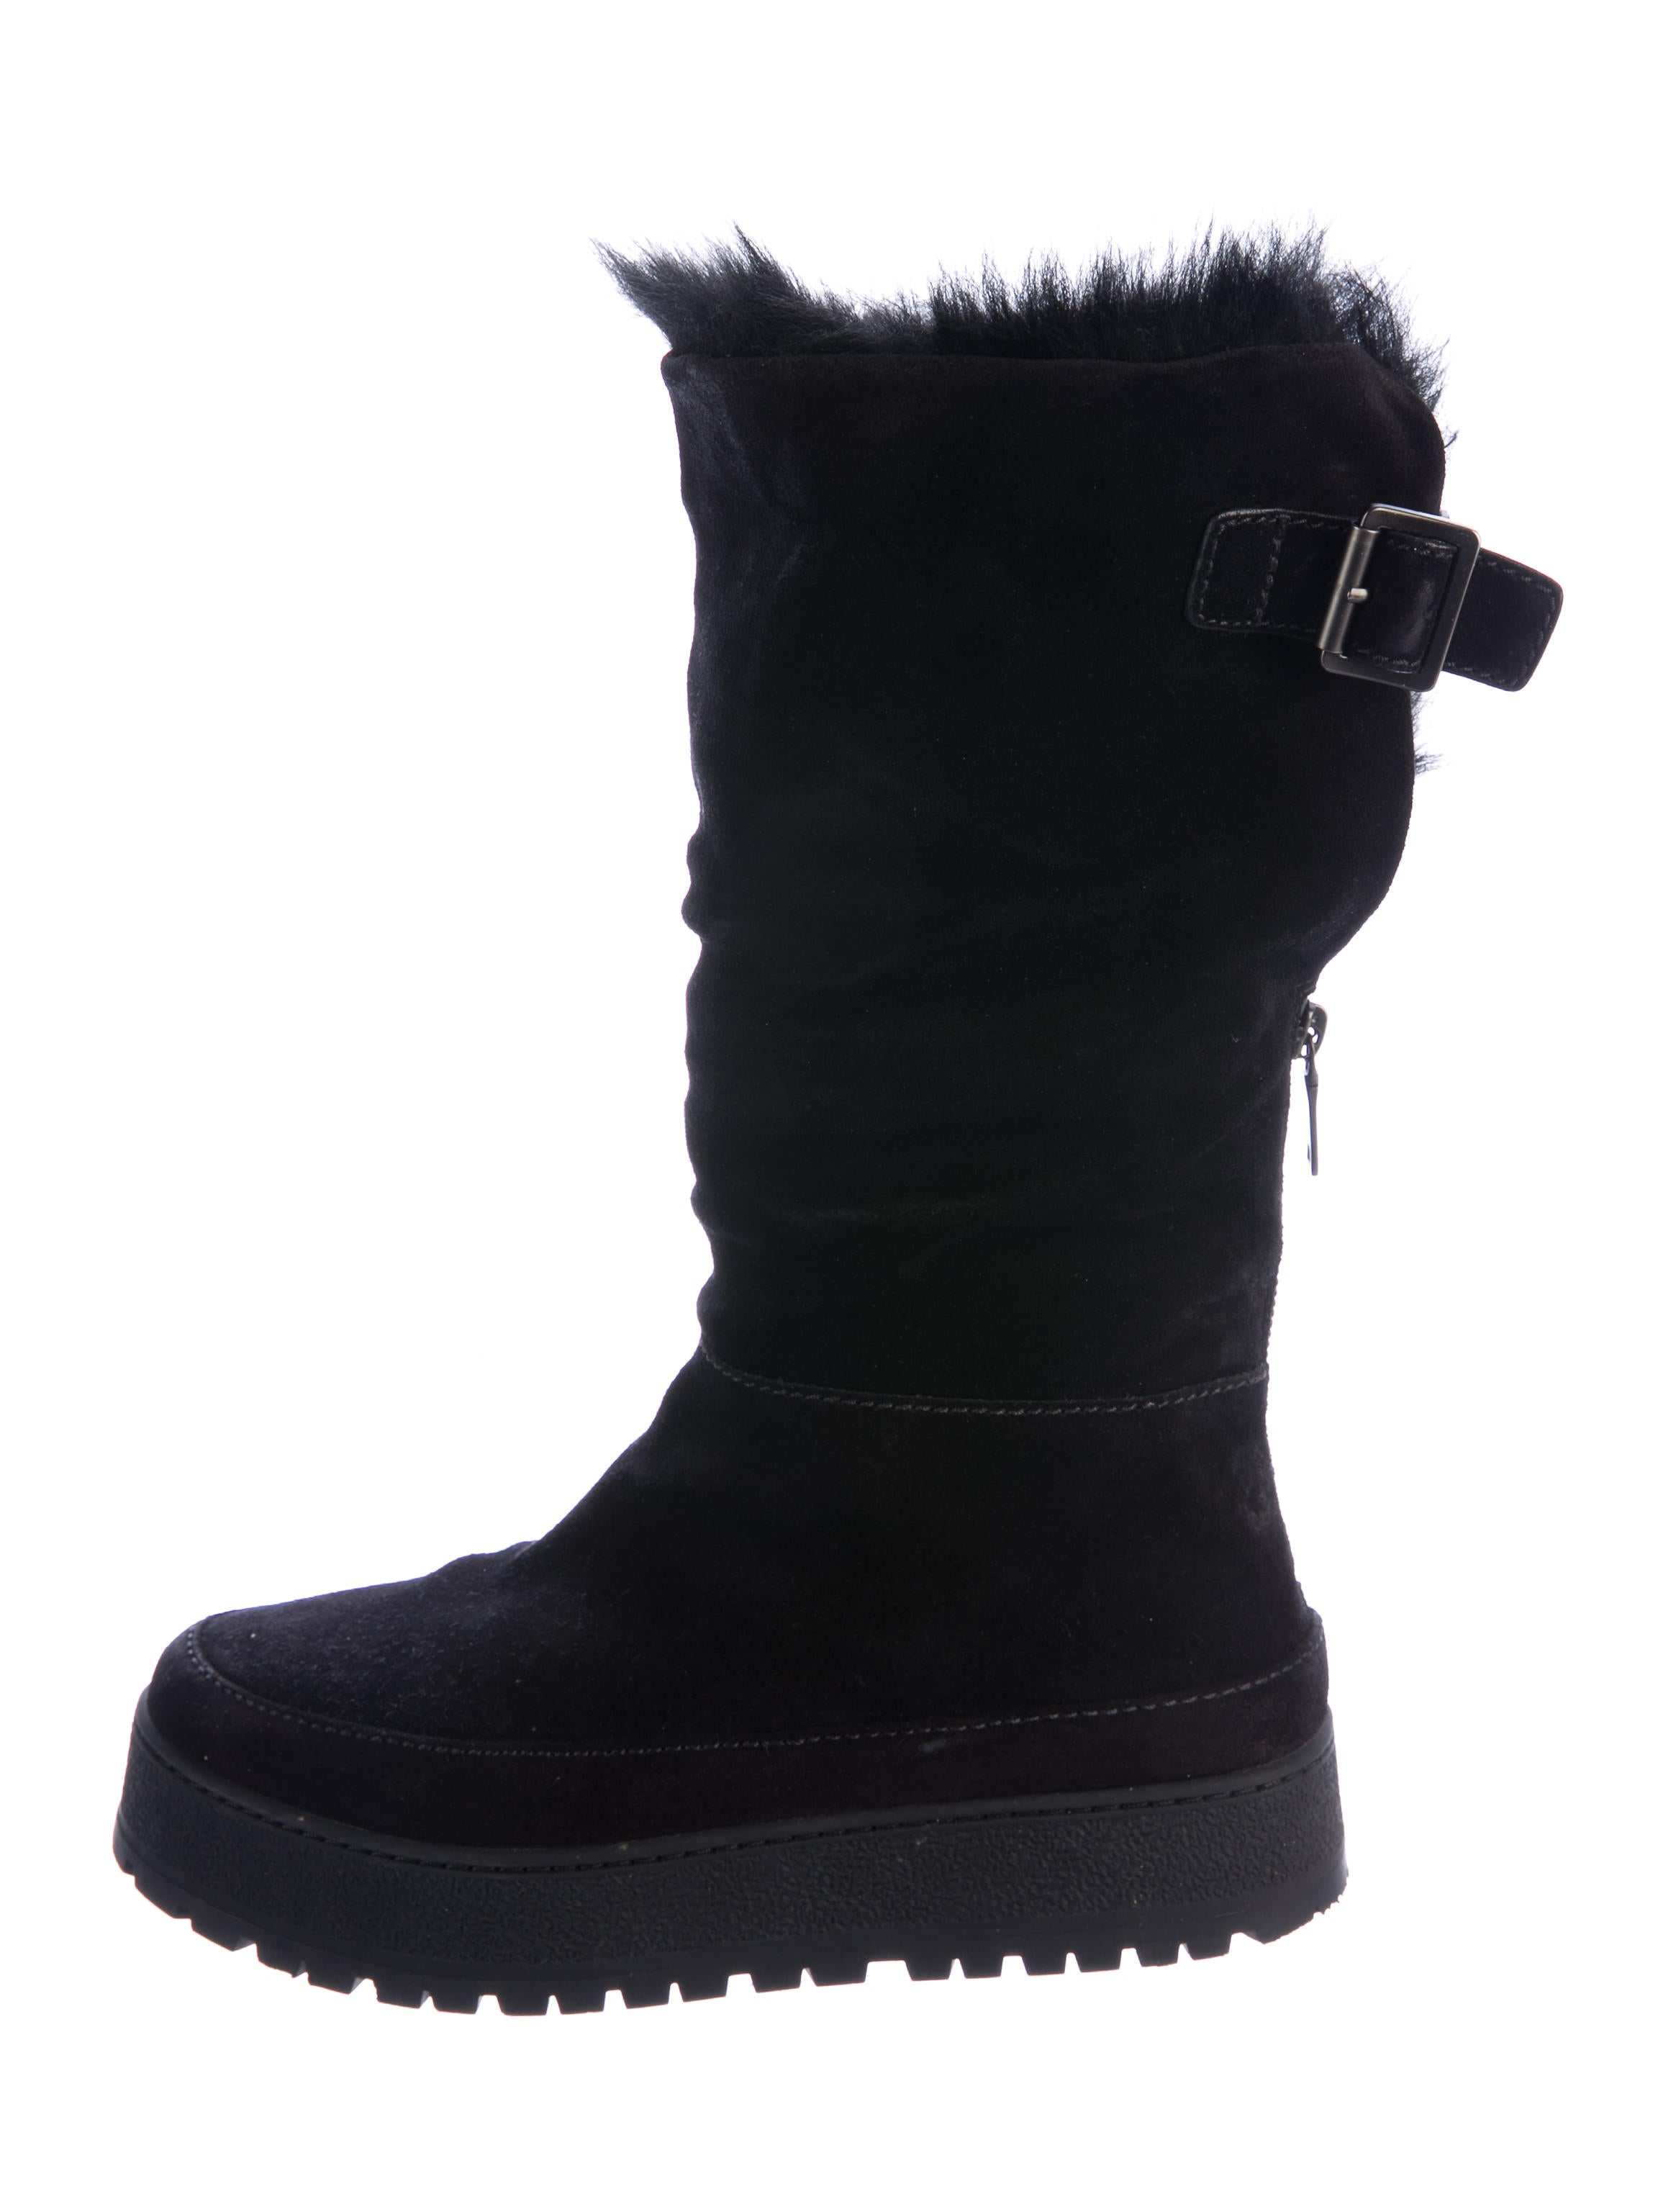 prada sport fur trimmed suede ankle boots shoes